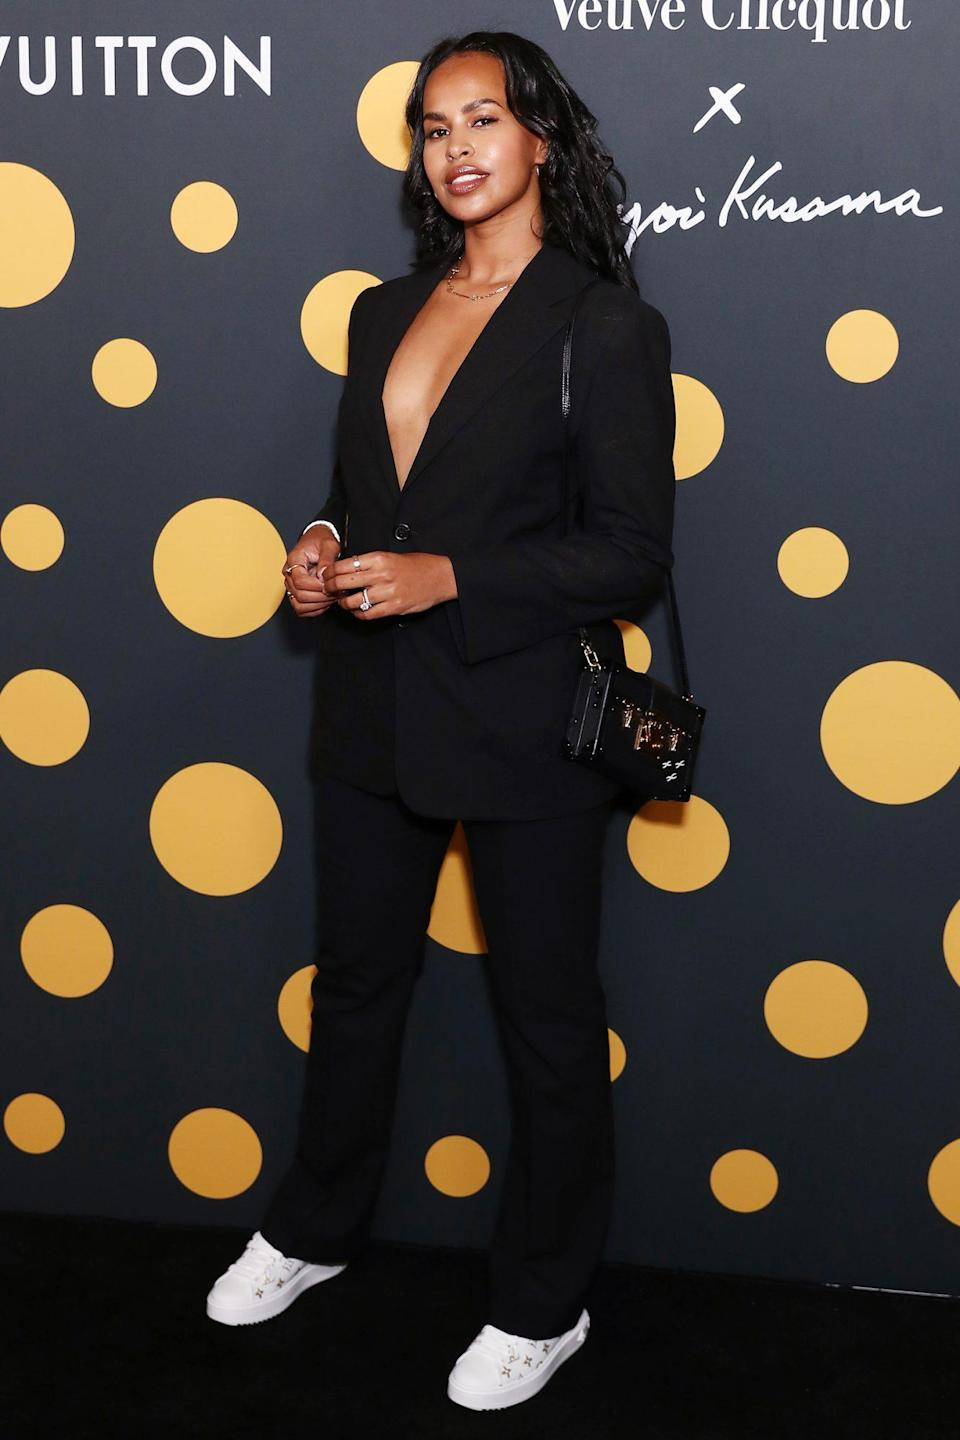 <p>Sabrina Elba arrives at a cocktail event to celebrate Veuve Clicquot's partnership with artist Yayoi Kusama and new vintage 'La Grande Dame 2012' at<br> Louis Vuitton in Sydney on Wednesday.</p>